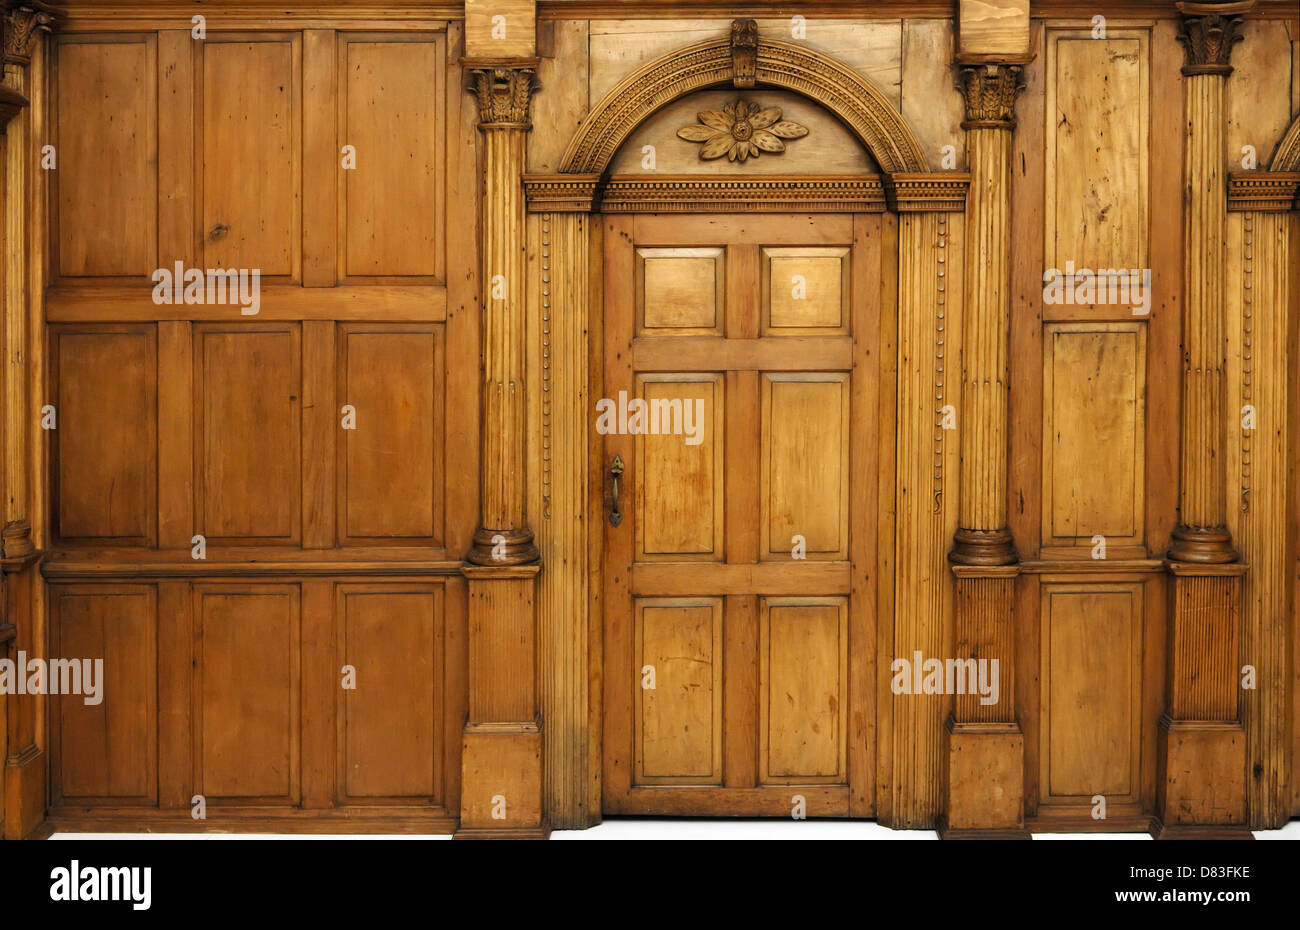 Gentil Wooden Paneled Wall And An Arched Door Victorian Architecture Style Interior    Stock Image